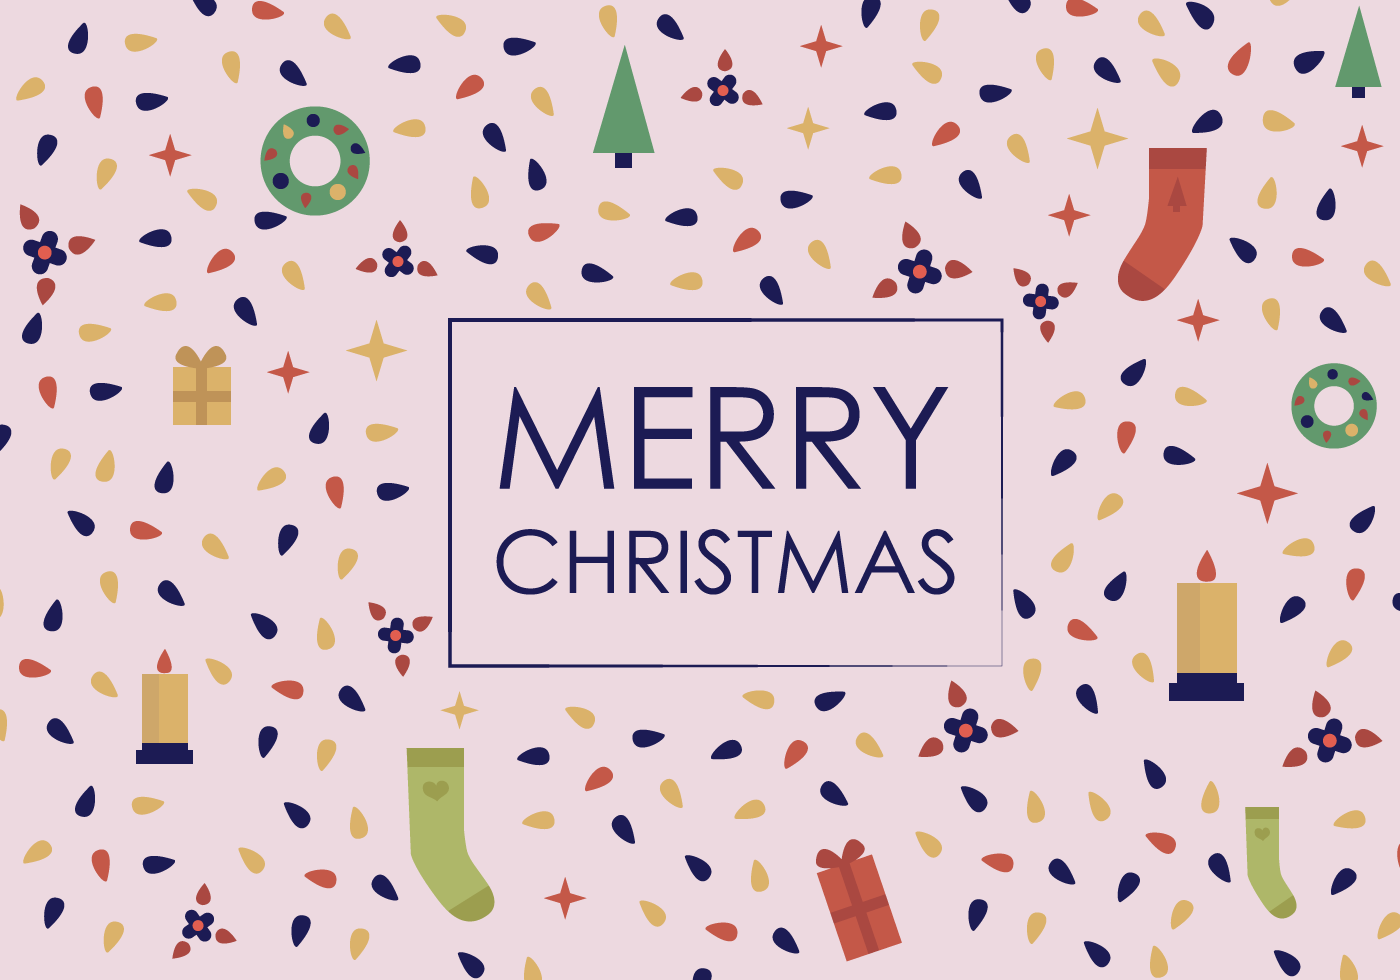 Free Merry Christmas Vector - Download Free Vector Art, Stock Graphics ...